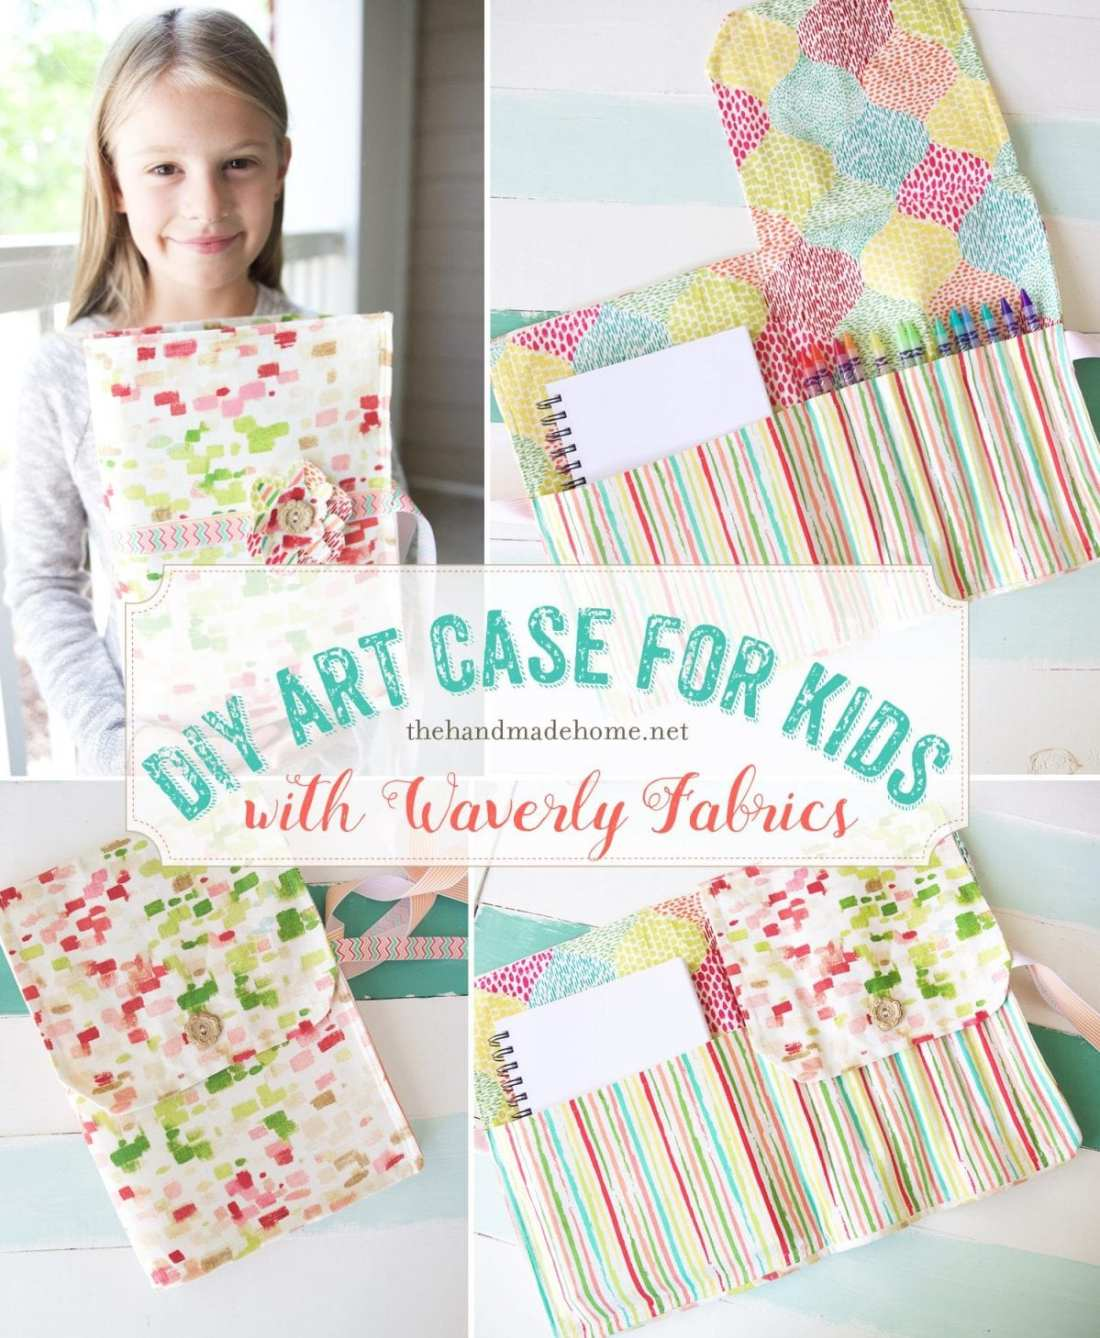 diy_art_case_for_kids_with_waverly_fabrics